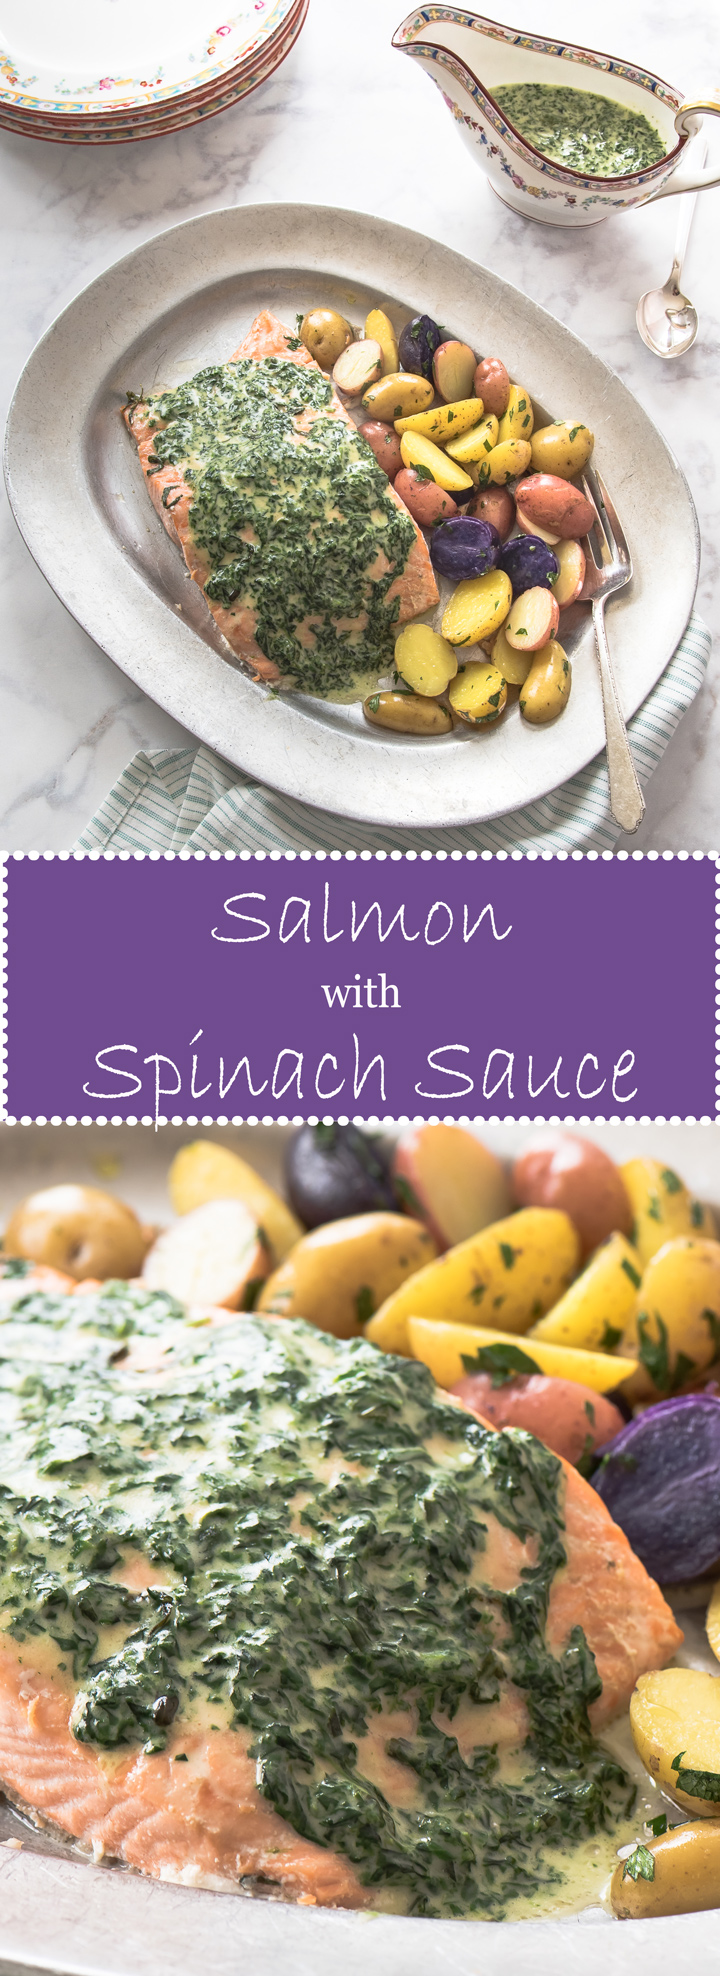 Oven Poached Salmon with Spinach Butter Sauce is an elegant meal for special occasions.